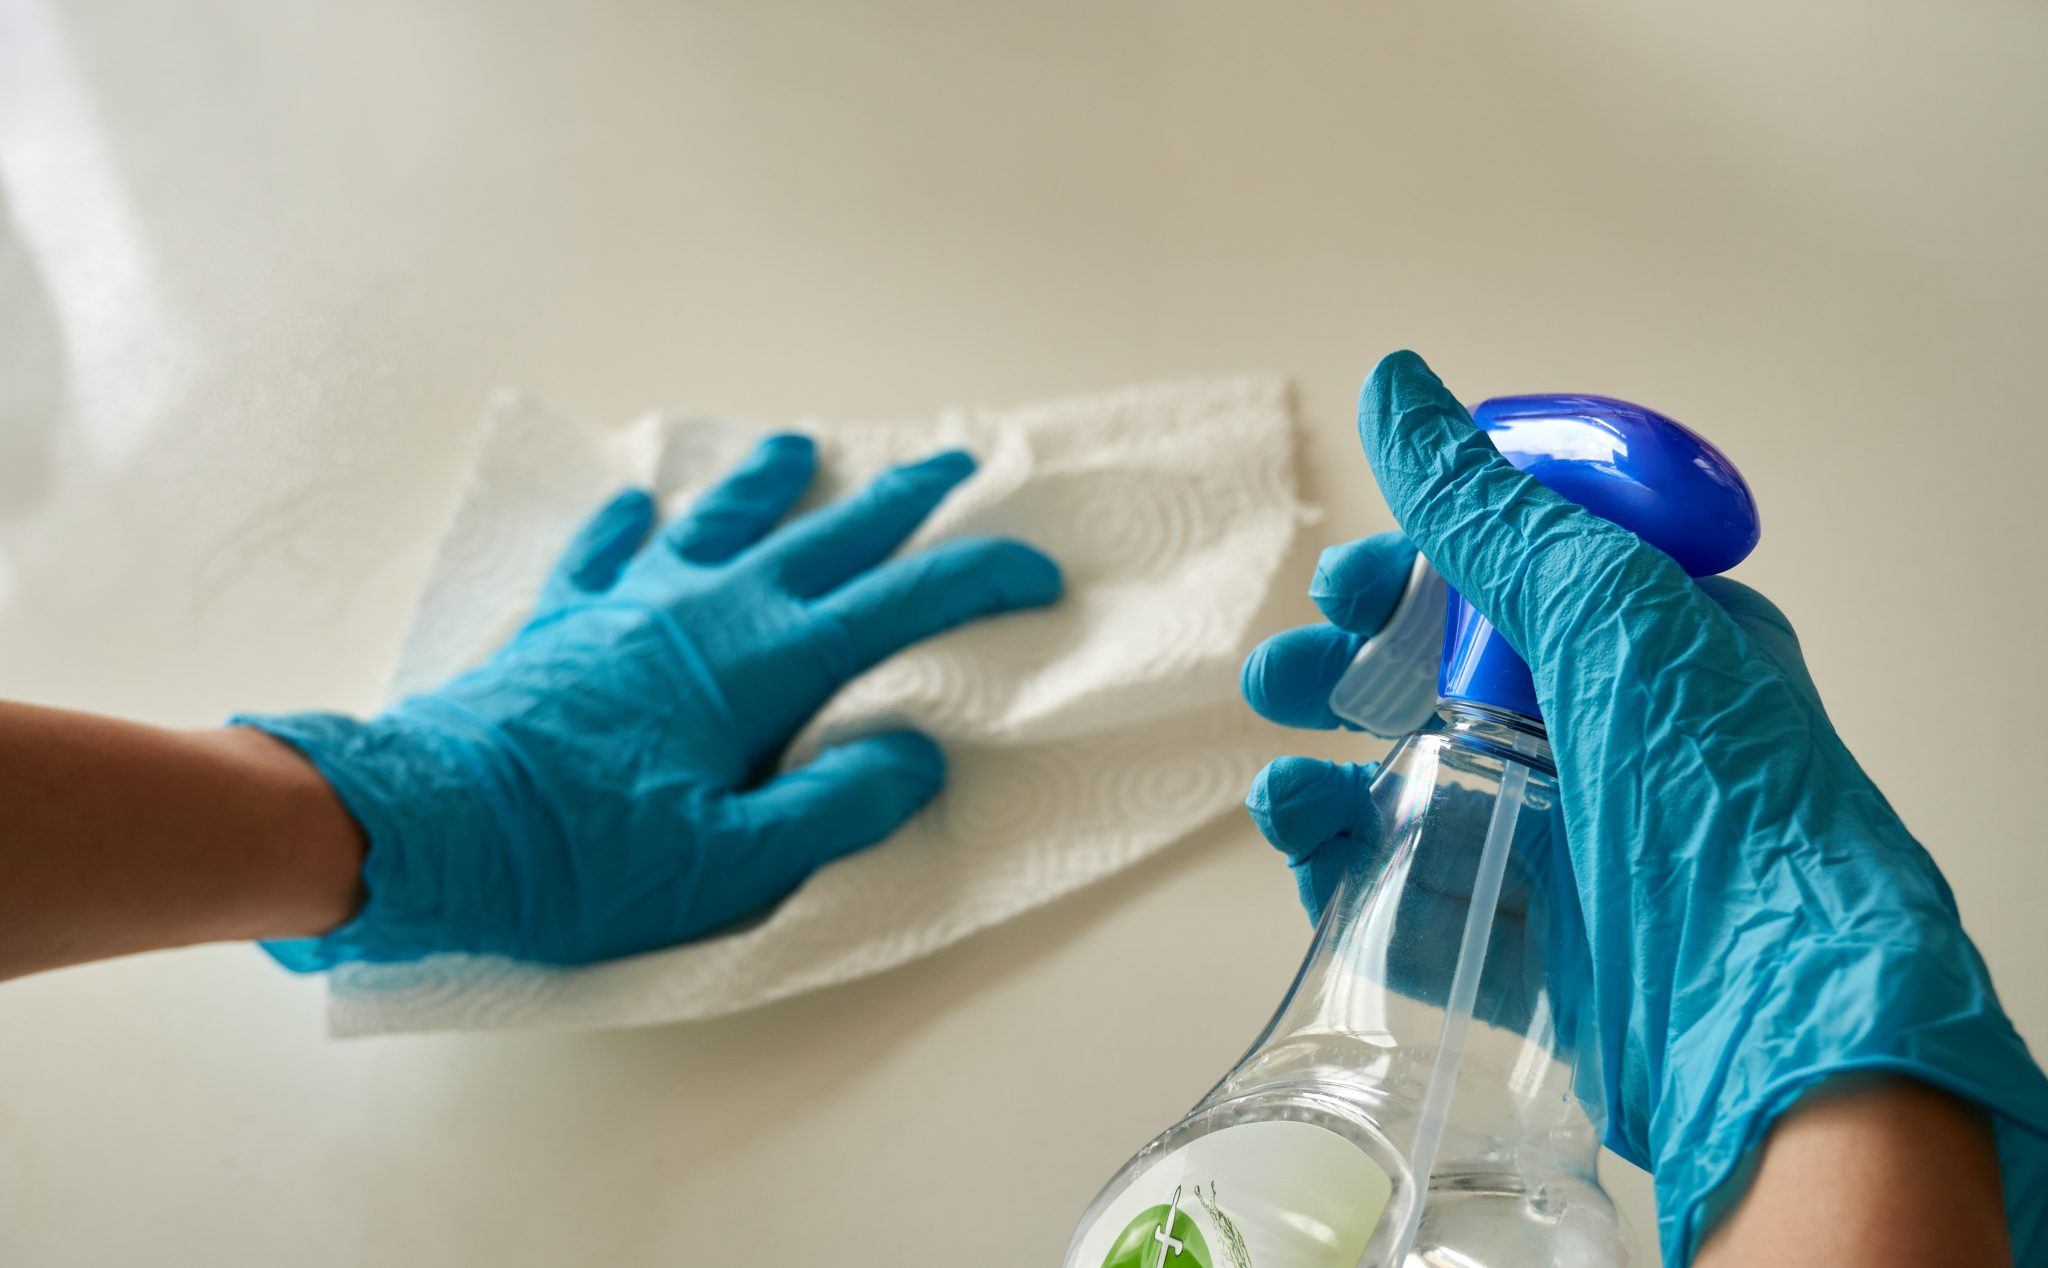 Always follow proper safety guidelines when using cleaners and disinfectants.